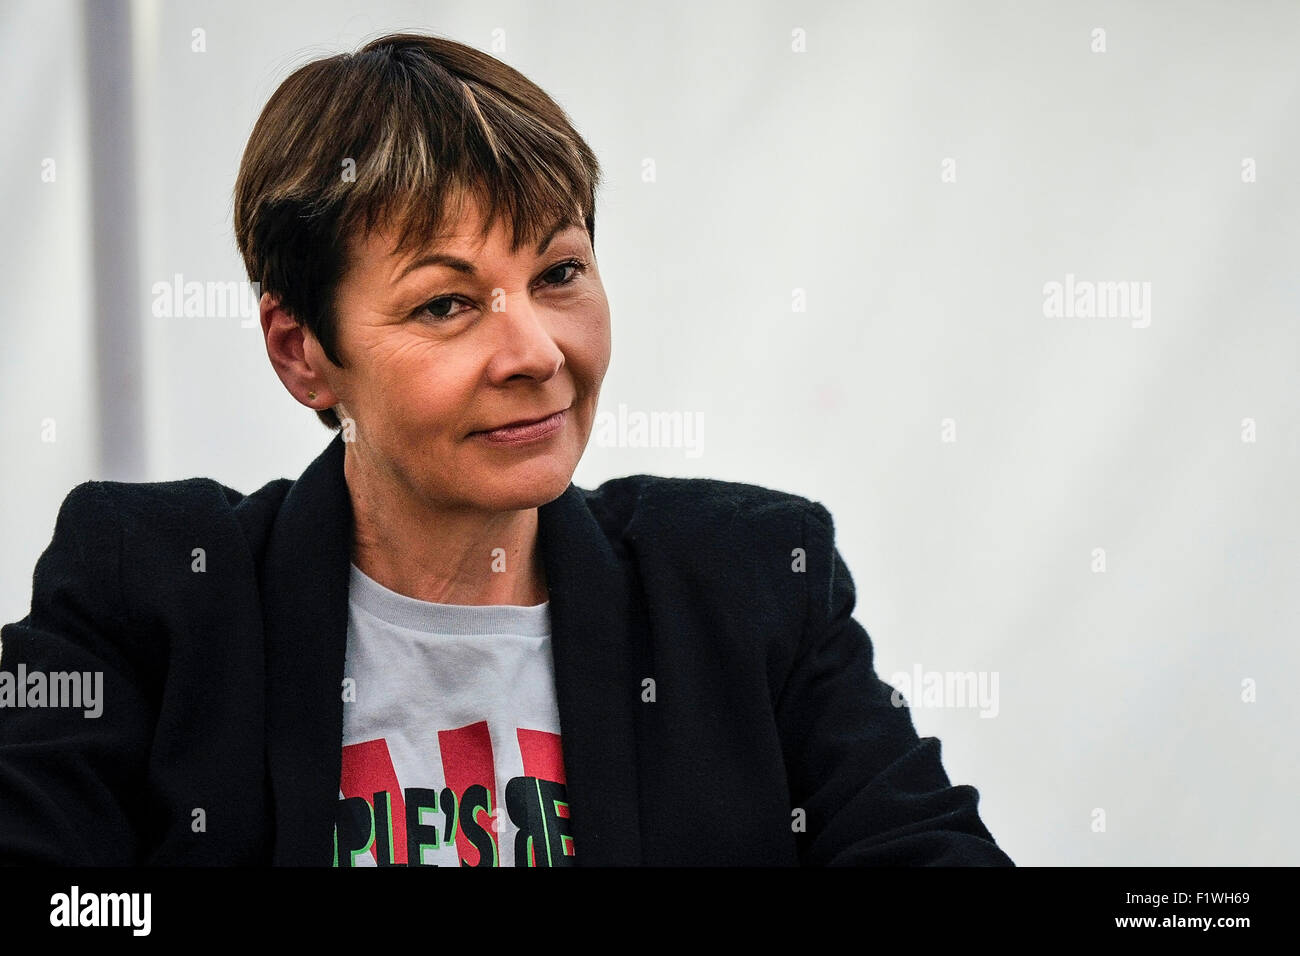 Caroline Lucas, Member of Parliament for Brighton Pavilion. - Stock Image